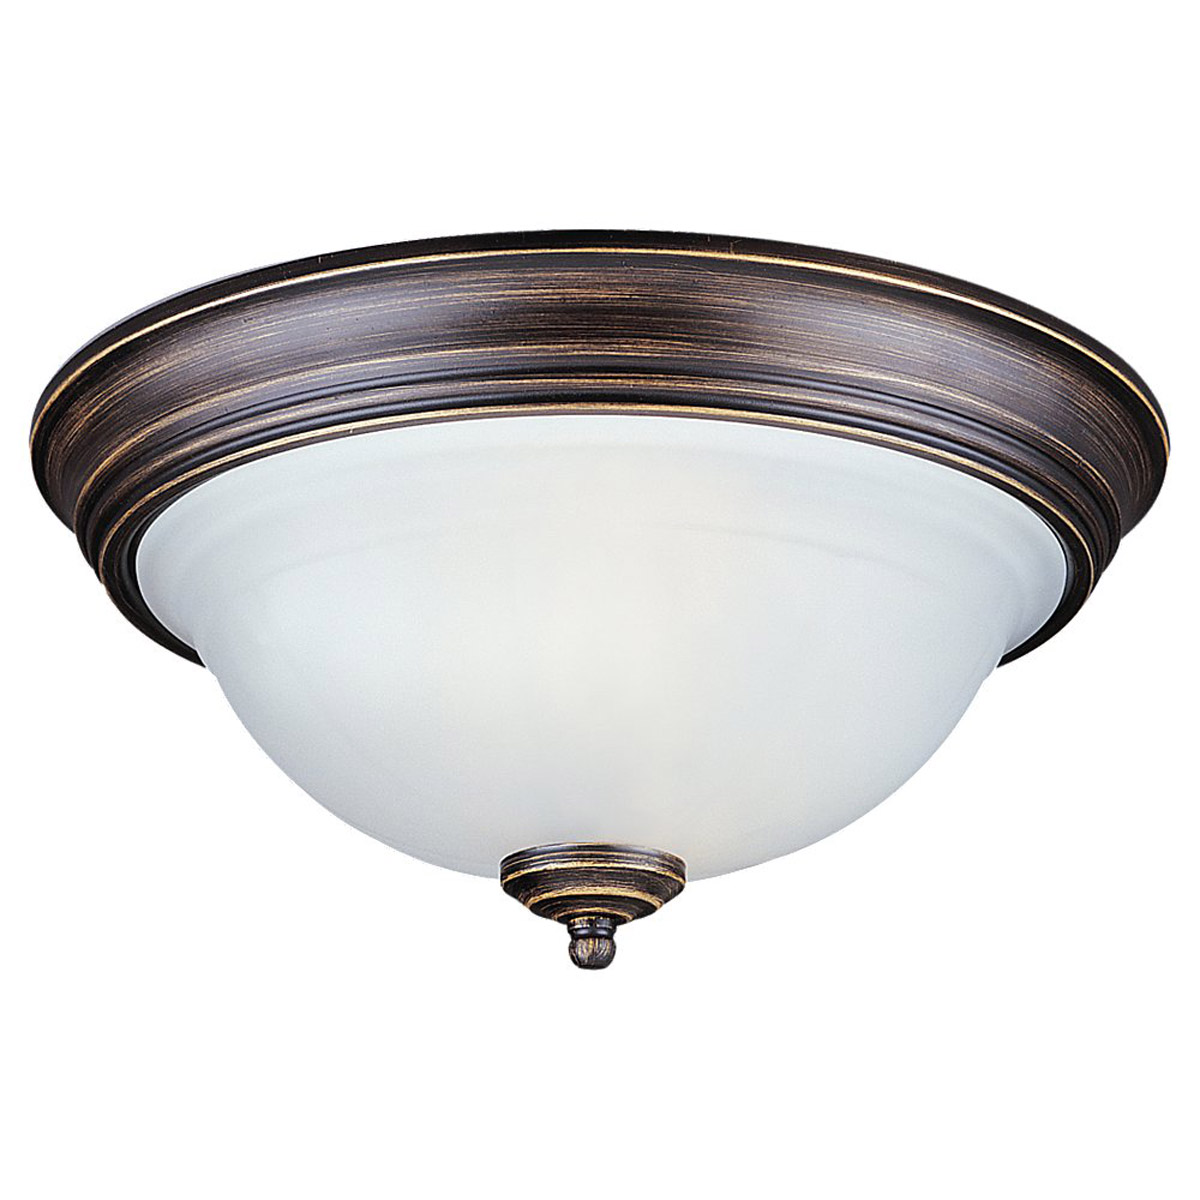 Sea Gull Lighting Canterbury 2 Light Flush Mount in Antique Bronze 79150BLE-71 photo